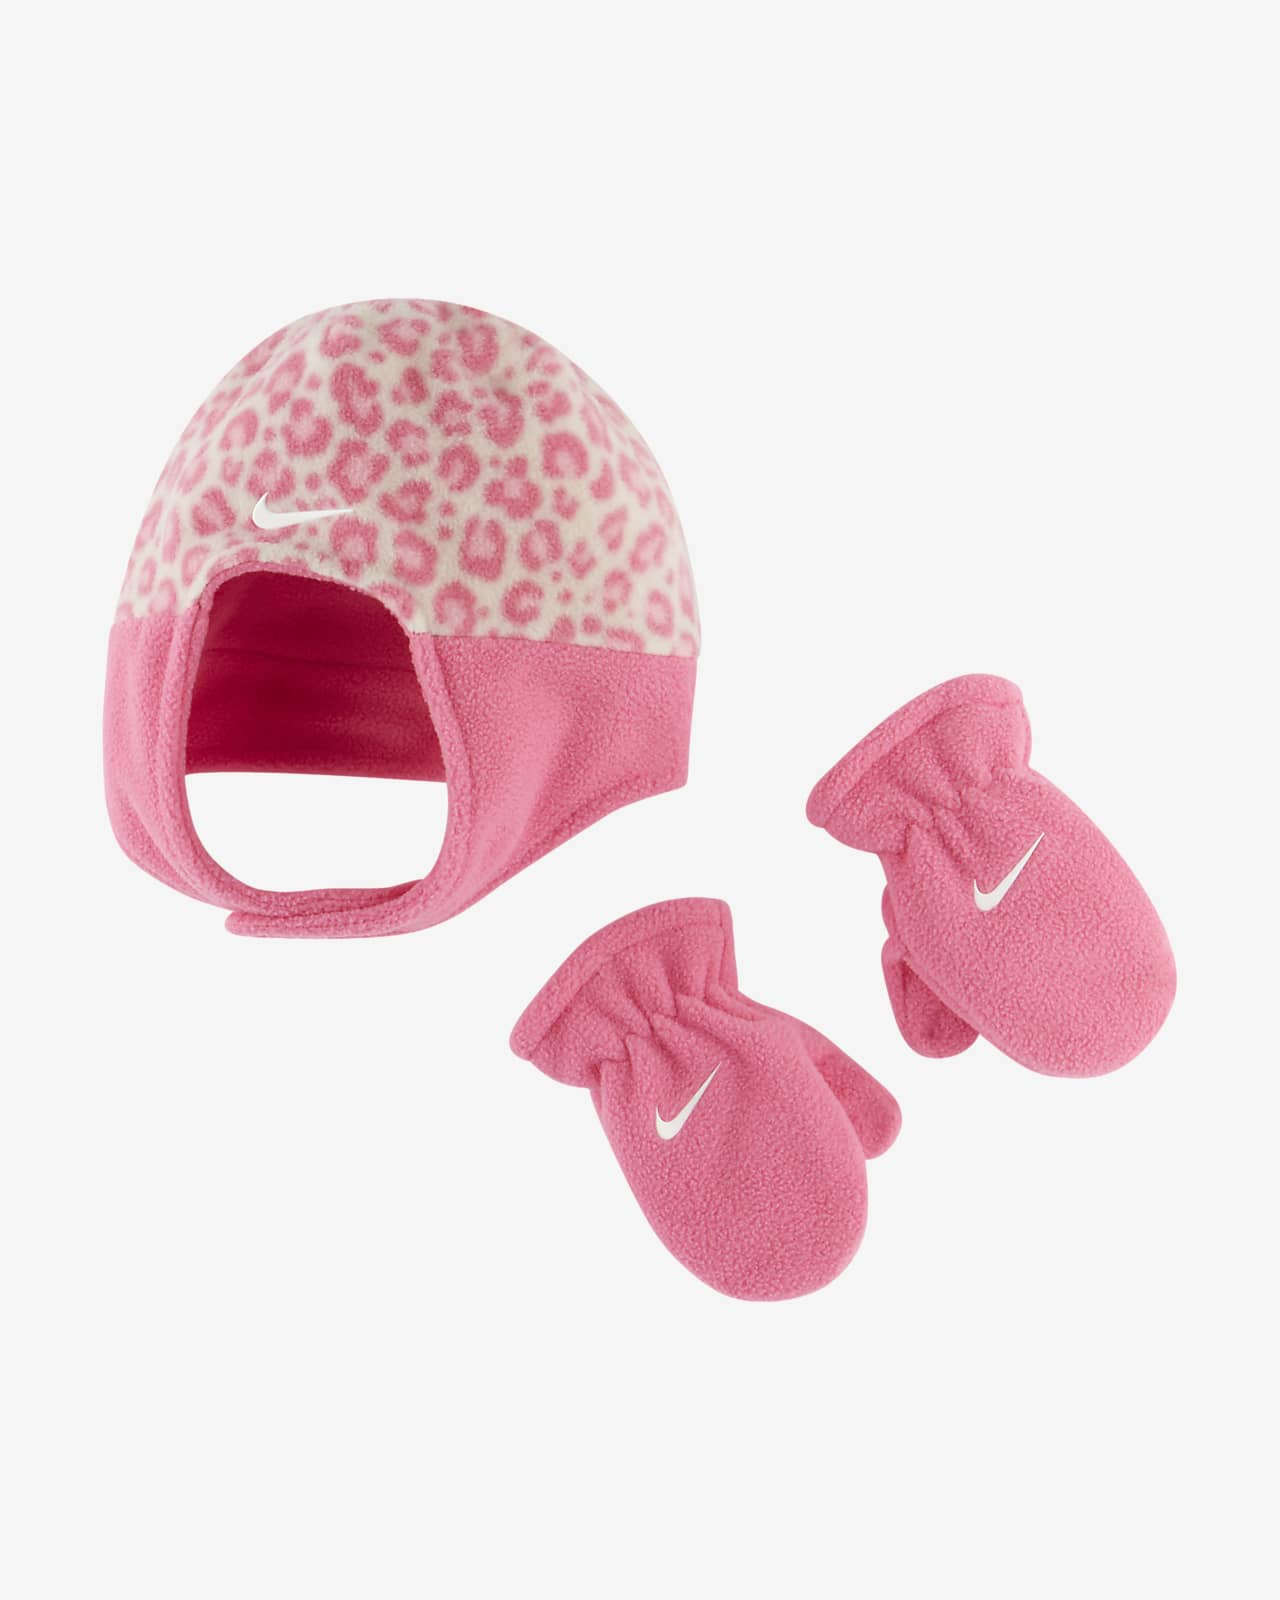 Nike Toddler Hat and Mittens Set